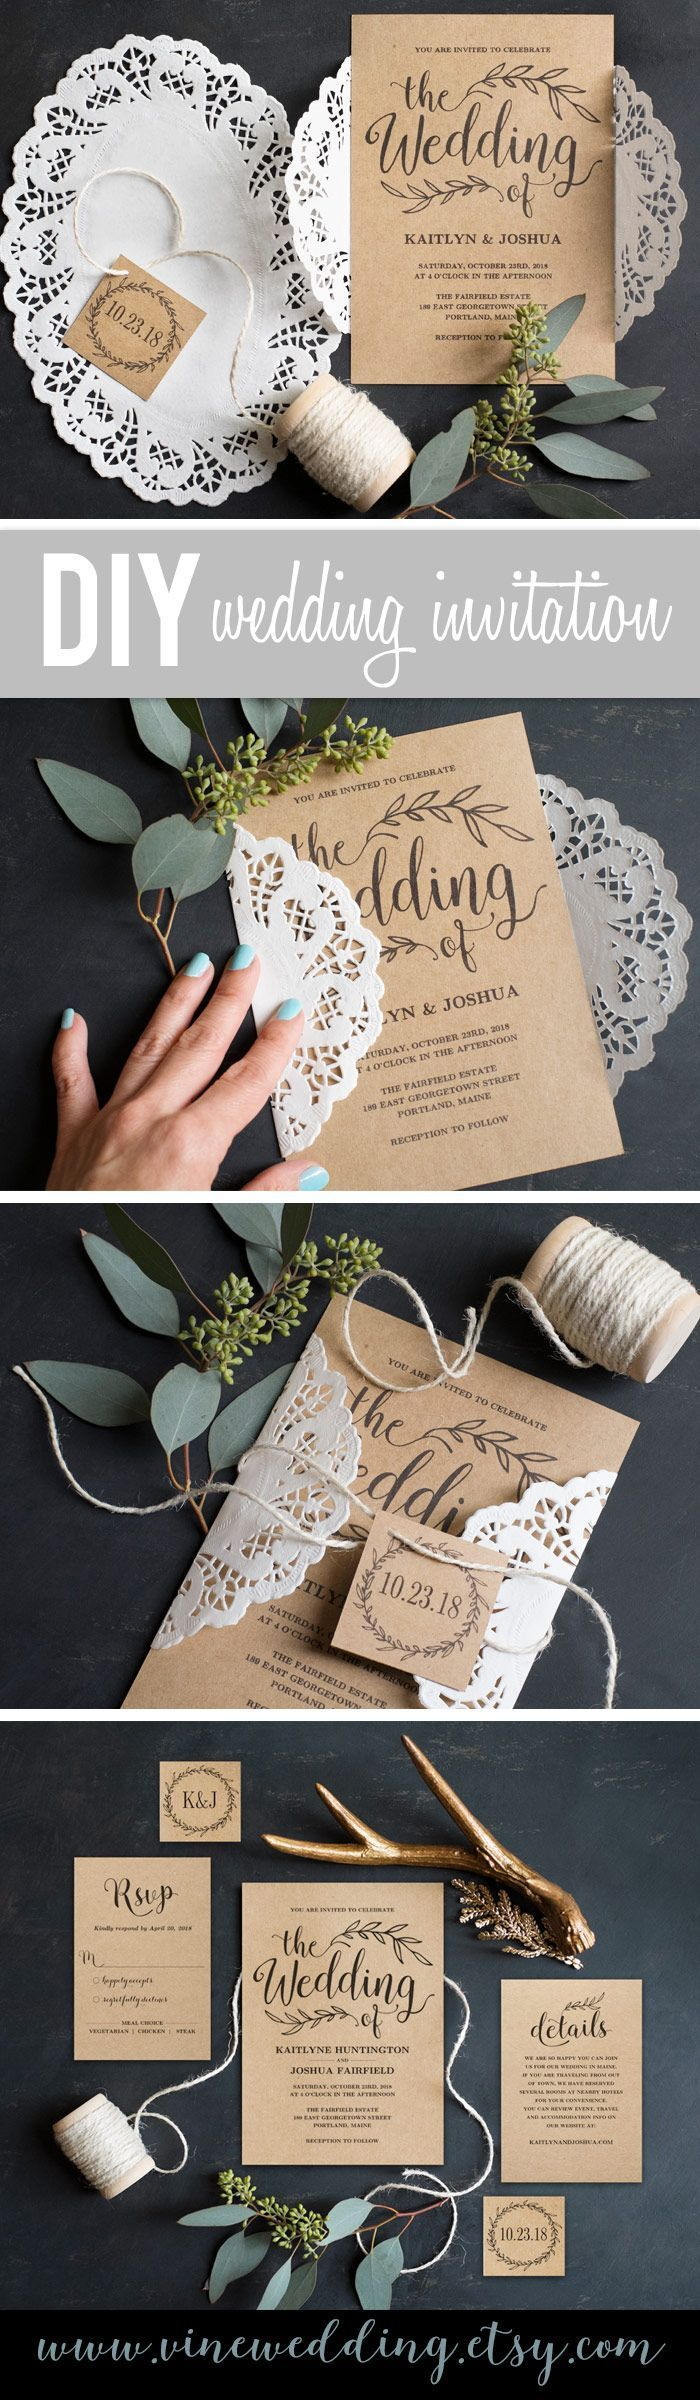 diy rustic wedding invitations burlap%0A    Unique DIY Wedding Invitation Ideas   Diy winter weddings  Winter wedding  invitations and Winter weddings